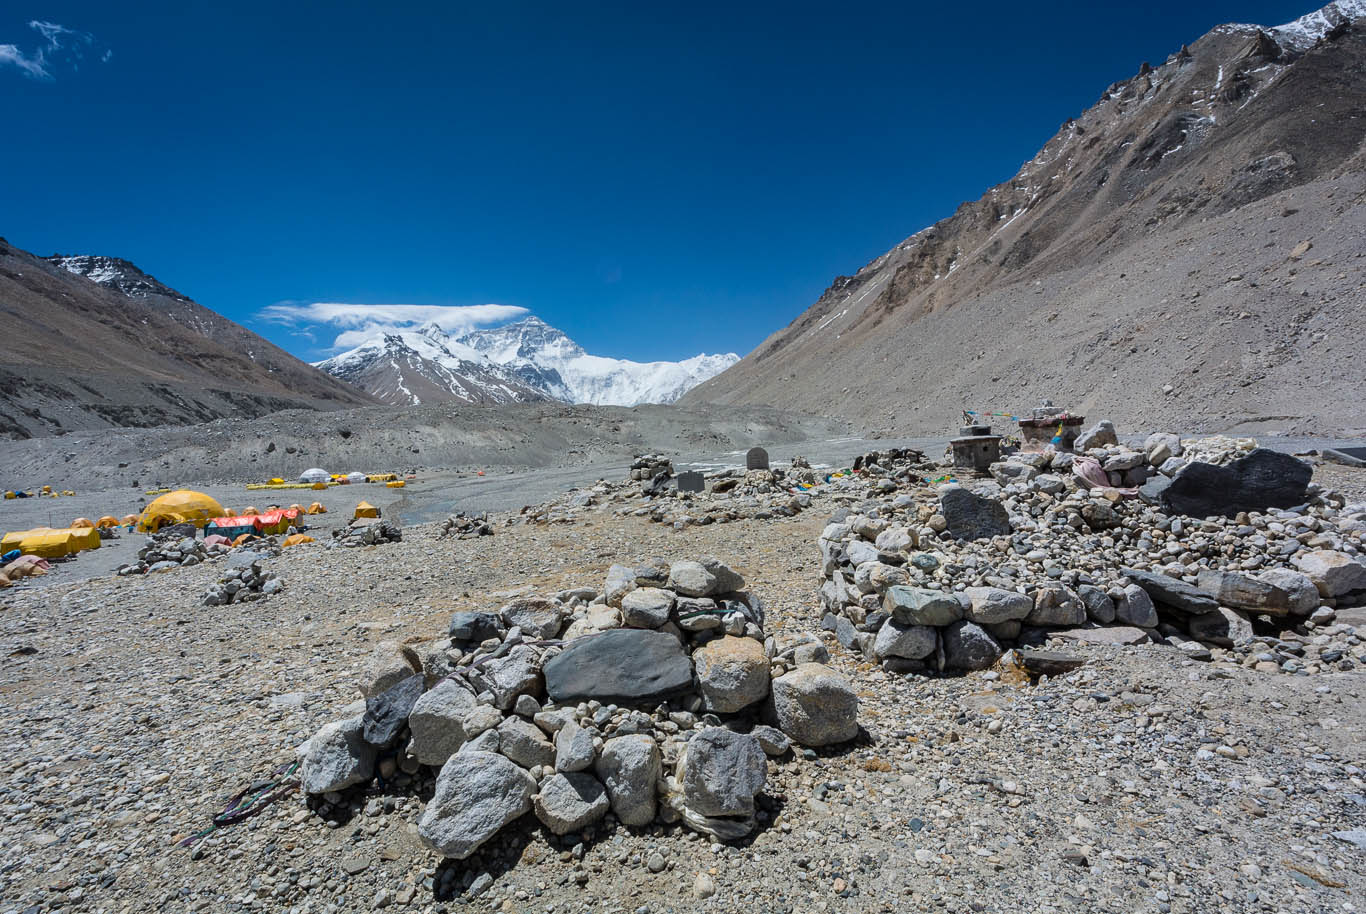 Lost On Everest – The Search For Mallory & Irvine. 1/5